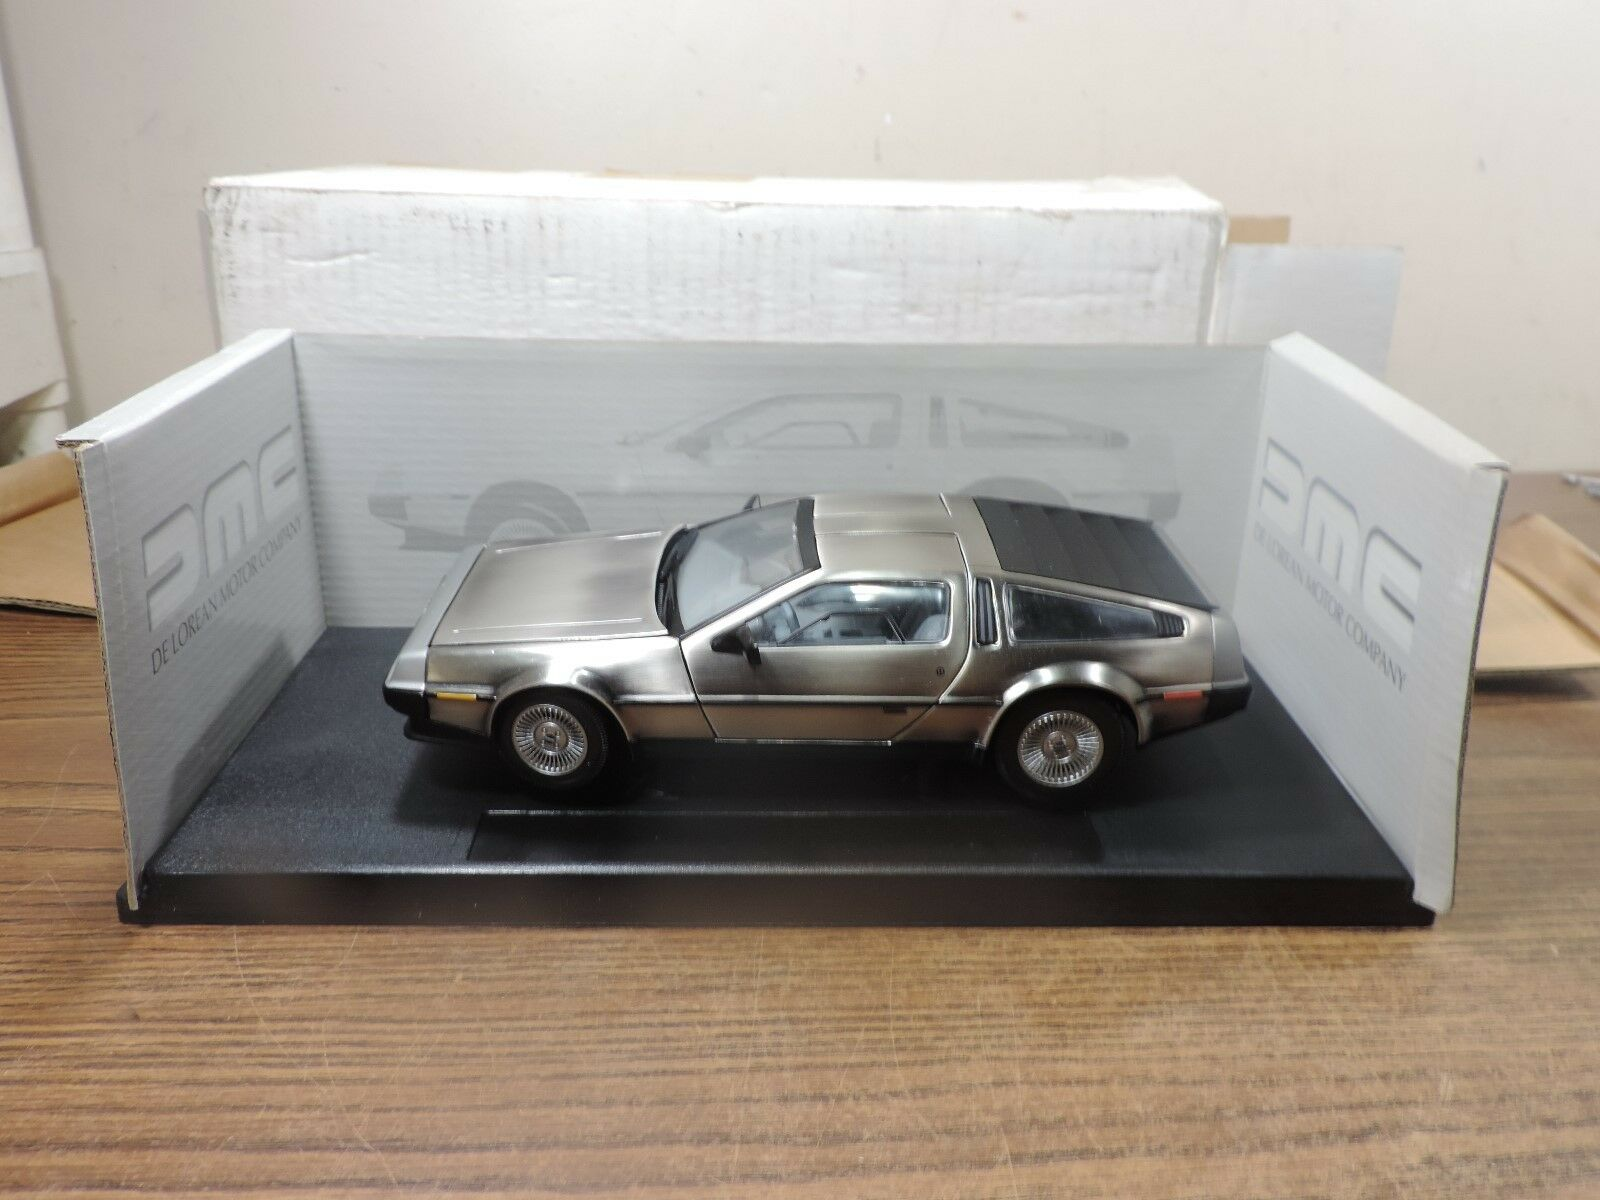 Fairfield - 1981 delorean lk coupé posten 2720